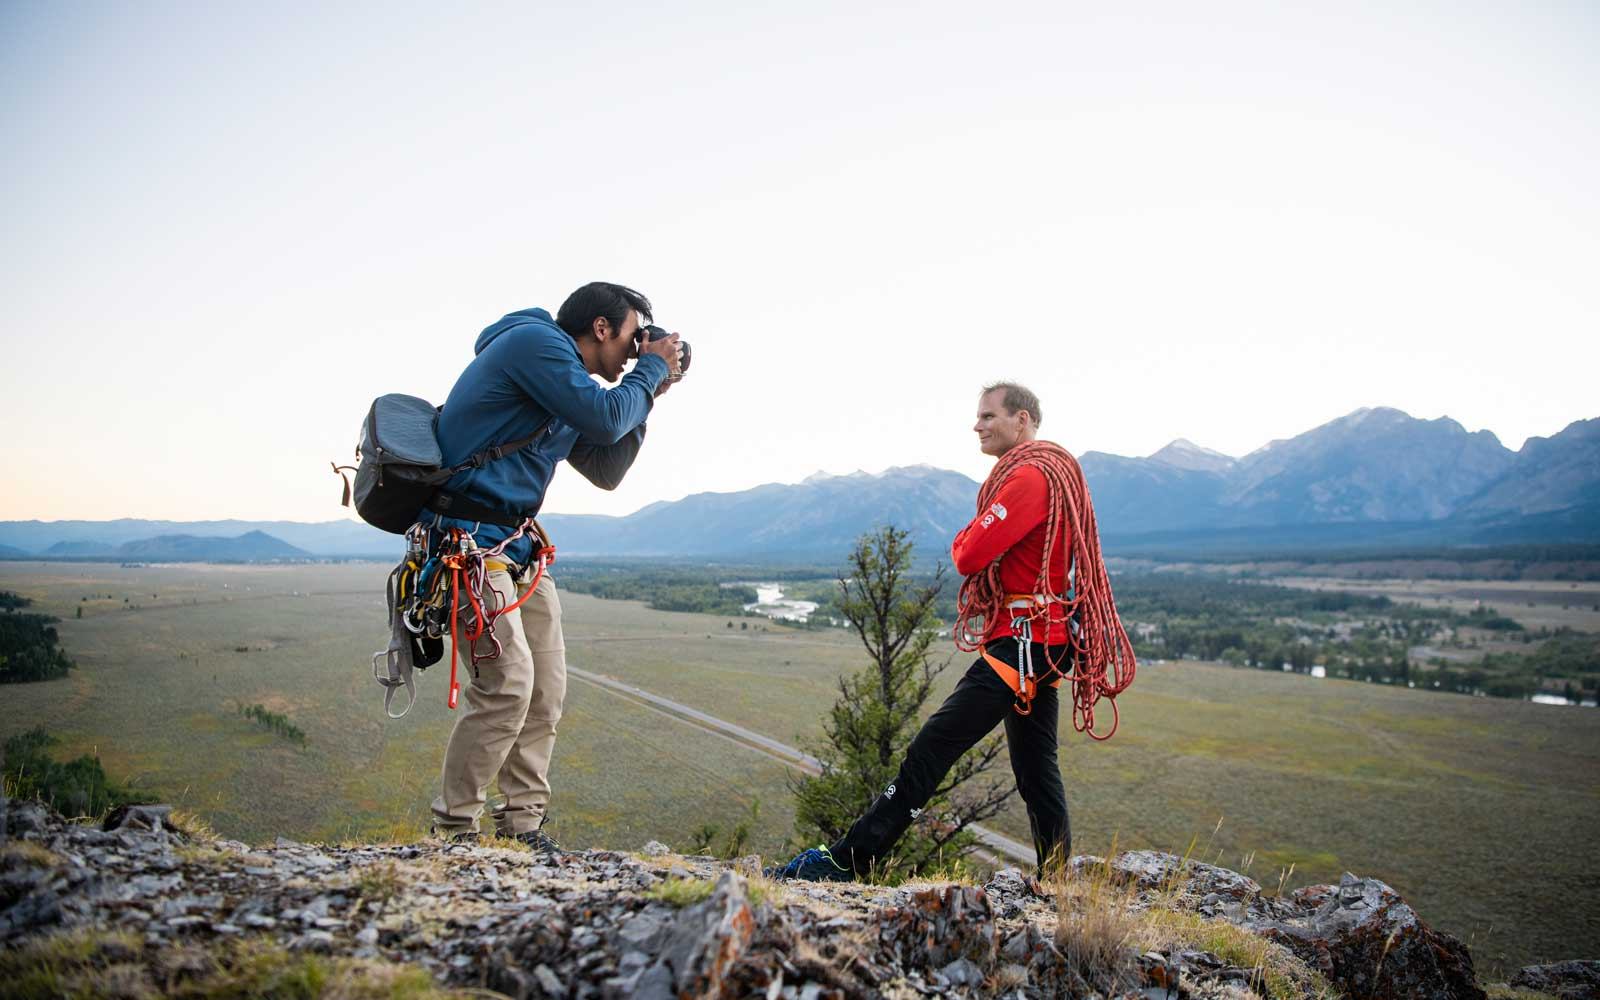 Jimmy Chin snaps a photograph during a shoot.